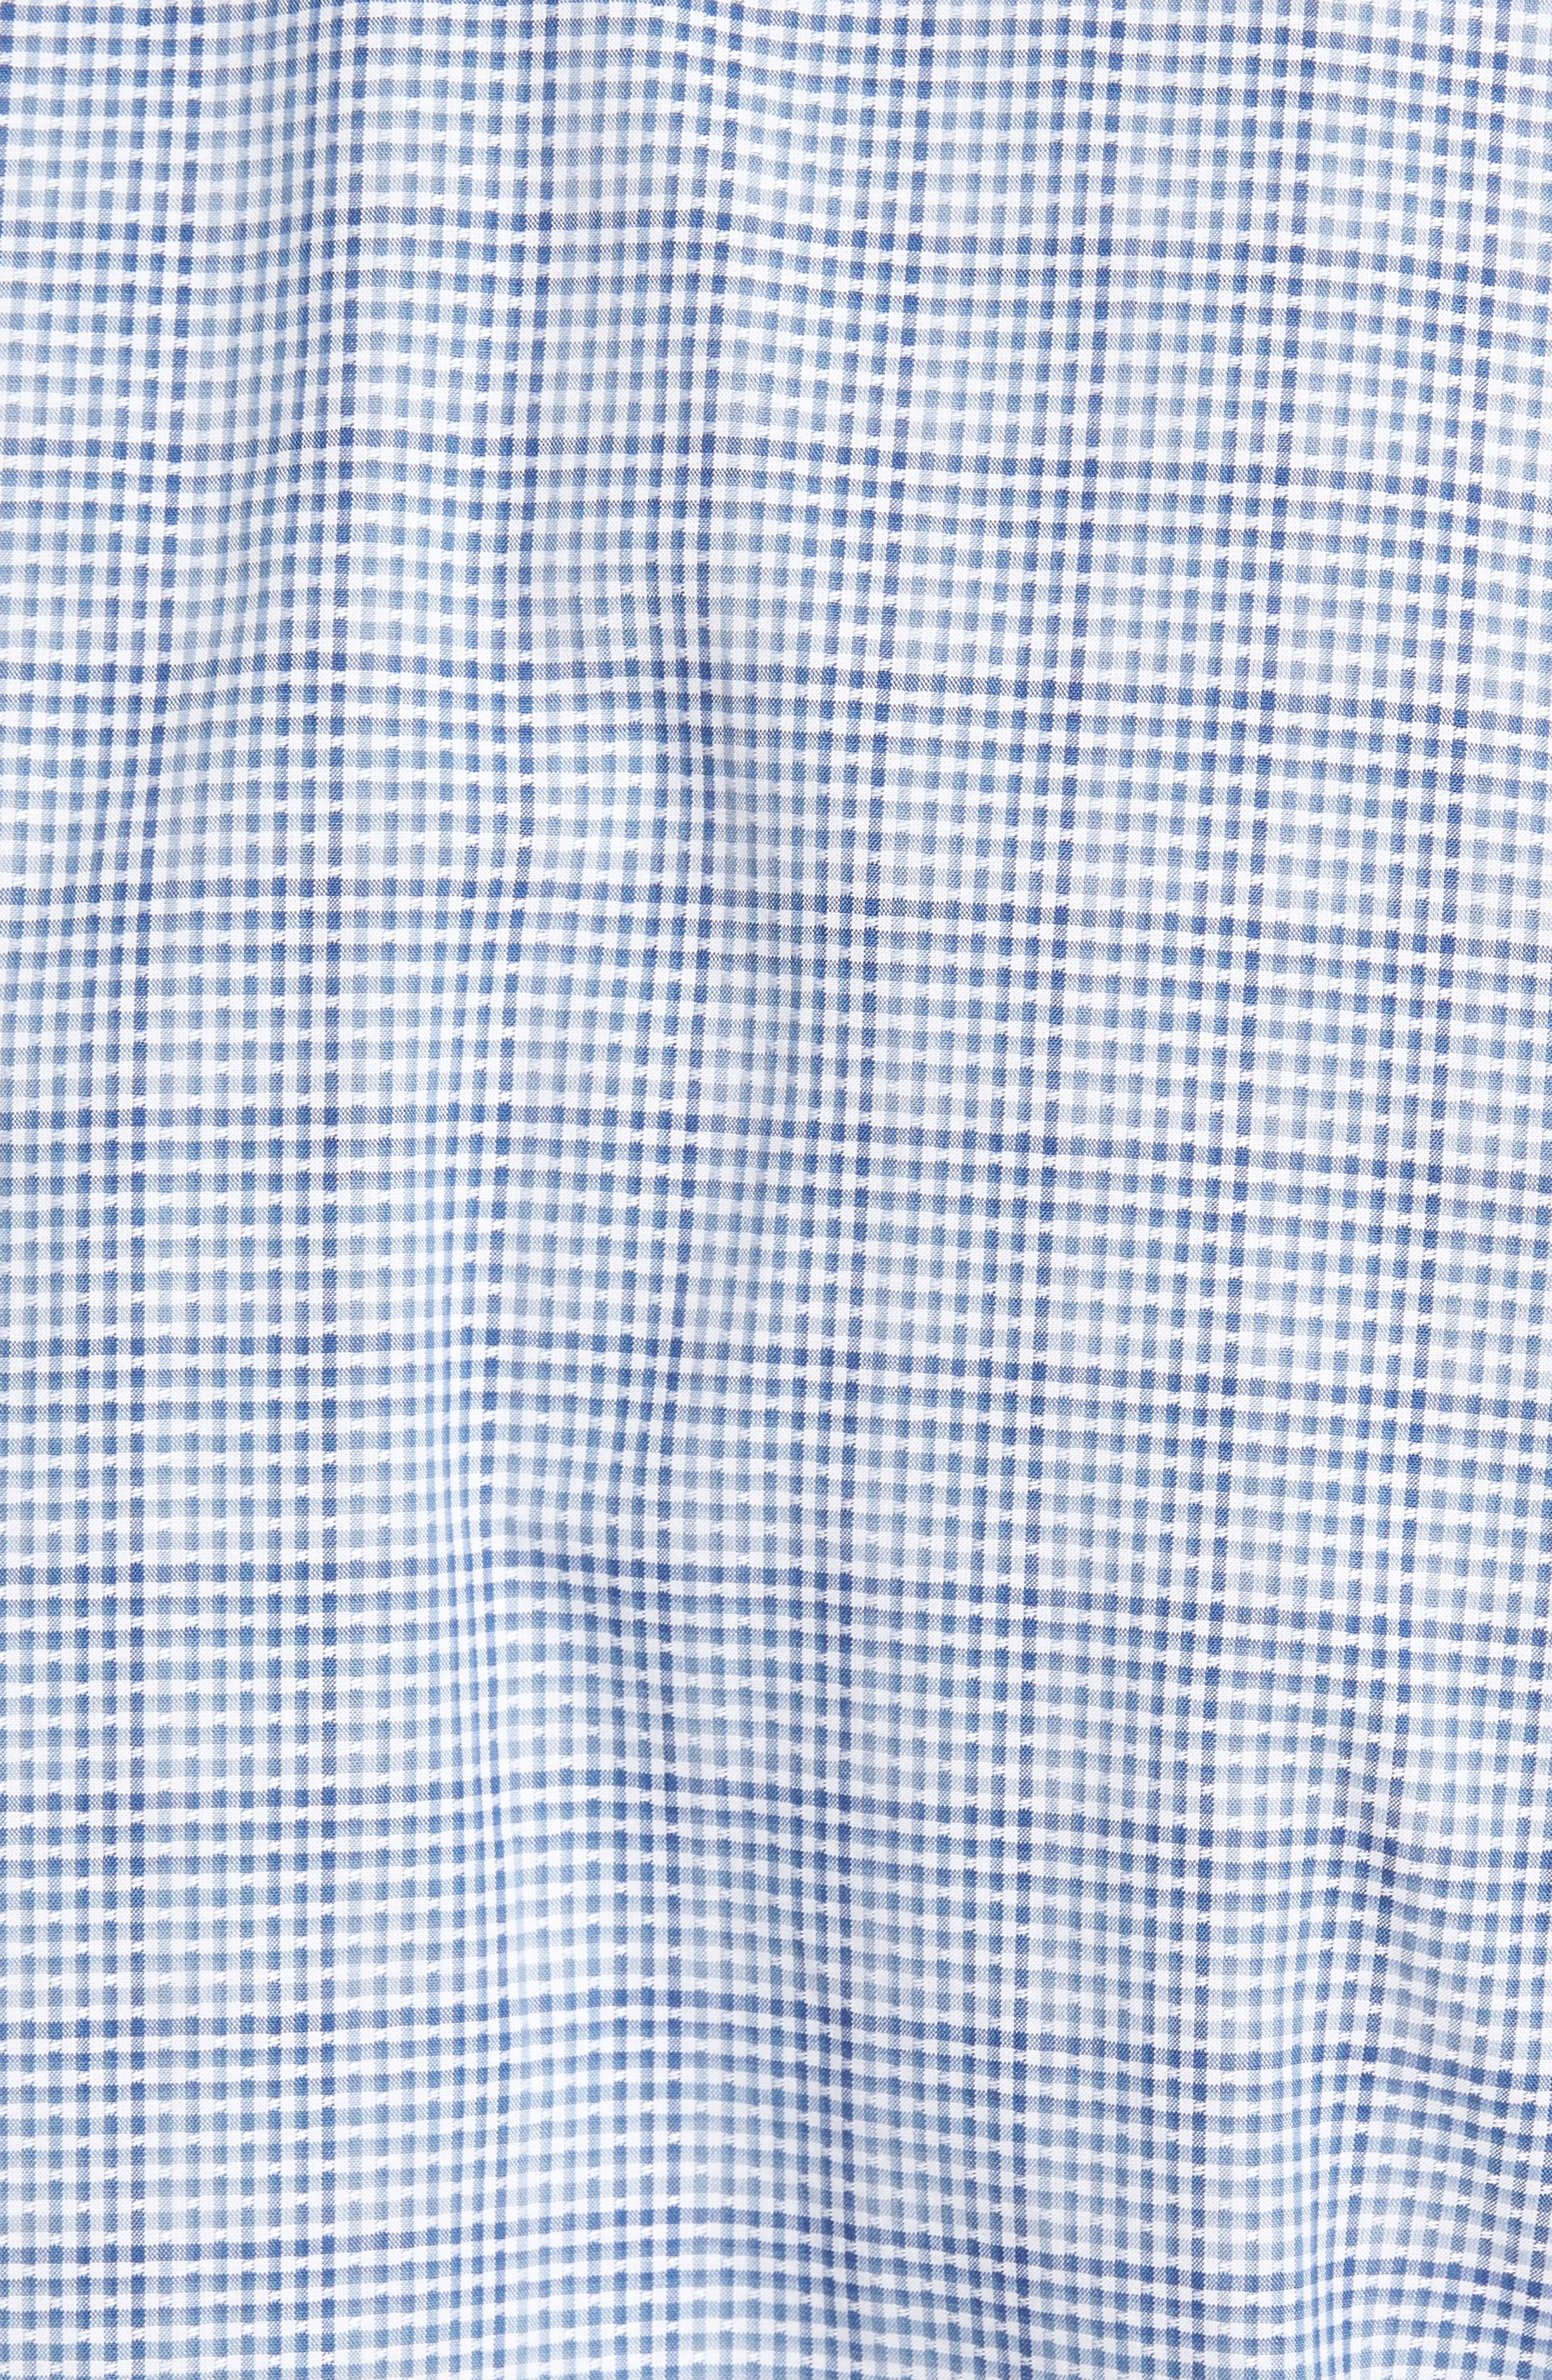 Regular Fit Dobby Check Sport Shirt,                             Alternate thumbnail 5, color,                             Blue